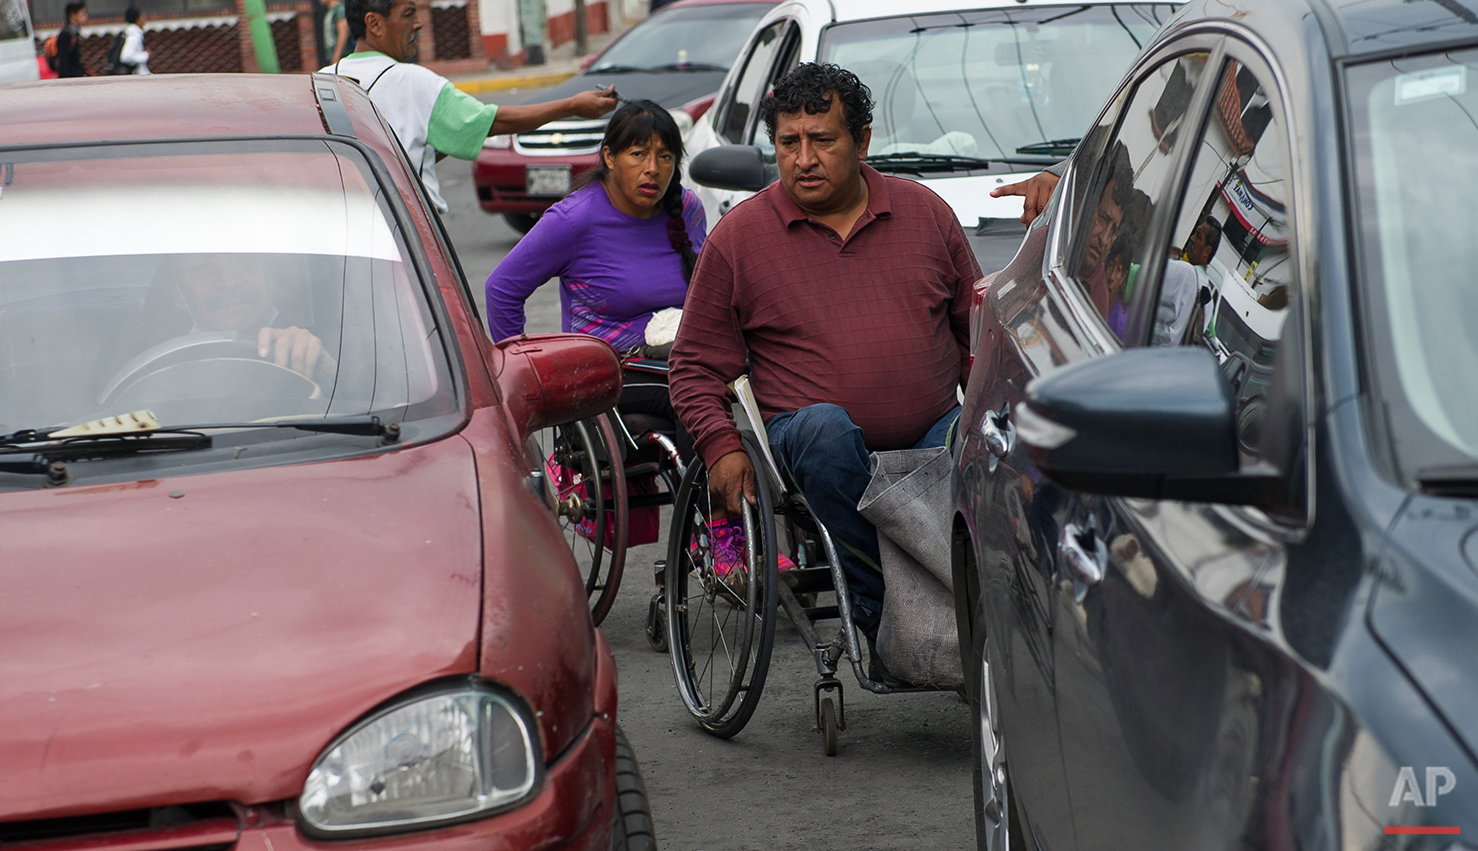 In this July 21, 2016 photo, Salvador Espinoza and Graciela Sanchez Martinez maneuver through traffic while selling sugar in Chalco, Mexico. The couple sells sugar for 14 pesos, or about $0.75, as a way to earn a little more money in addition to the support they receive from the government. Espinoza and Sanchez Martinez, have performed in over a dozen charreadas and form the only married couple in the Patino paracharreria team. Sanchez Martinez was diagnosed at age 2 with Guillain-Barre syndrome, a nerve disorder that can cause muscle weakness and sometimes paralysis. A spinal cord injury left Espinoza paralyzed from the waist down. (AP Photo/Nick Wagner)